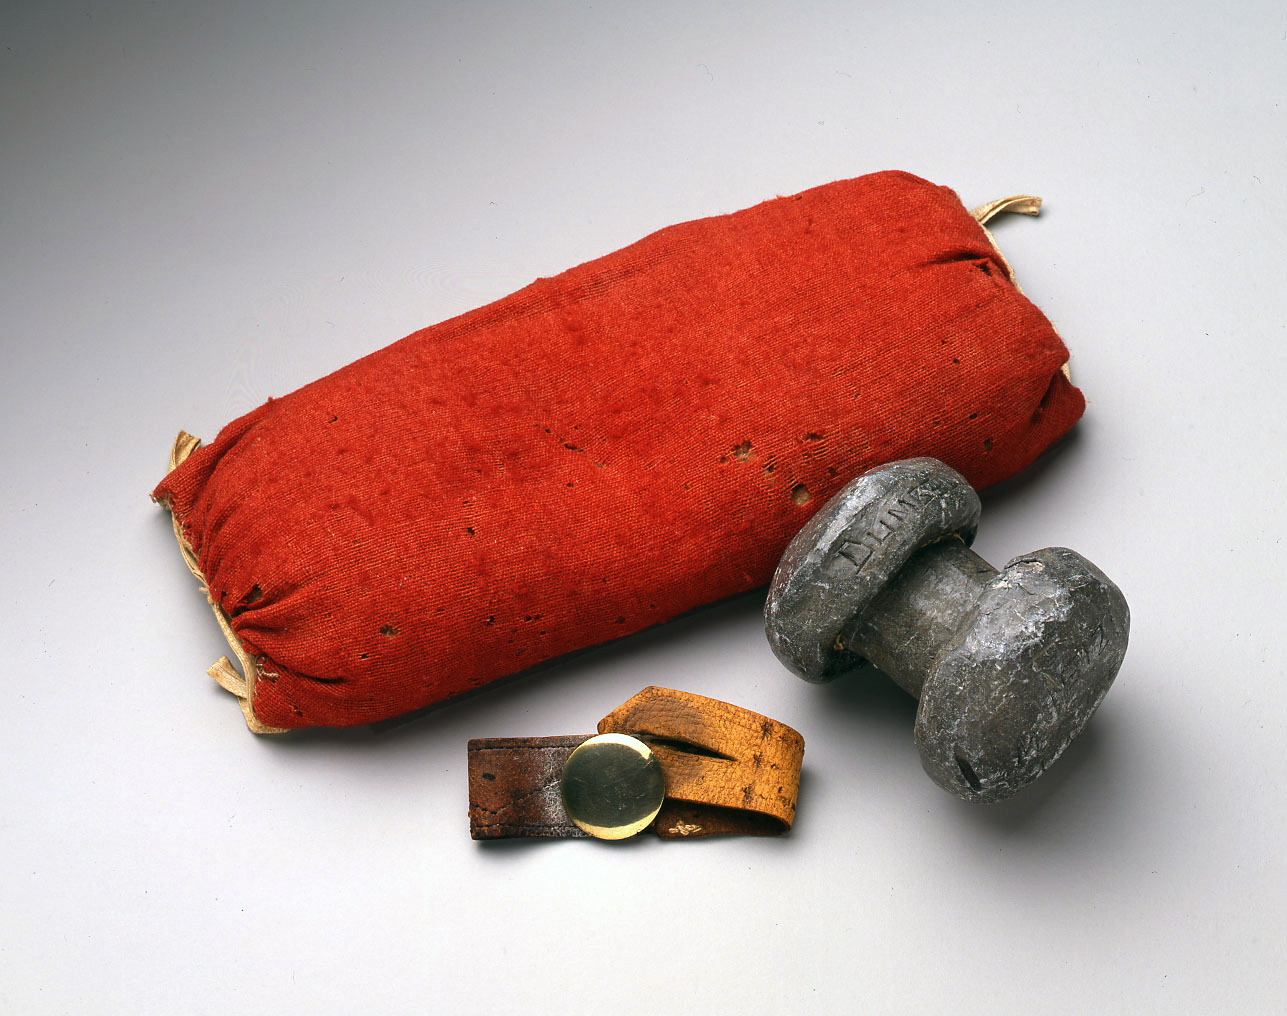 Wrist Cushion, Wrist Strap, and Dumbbell